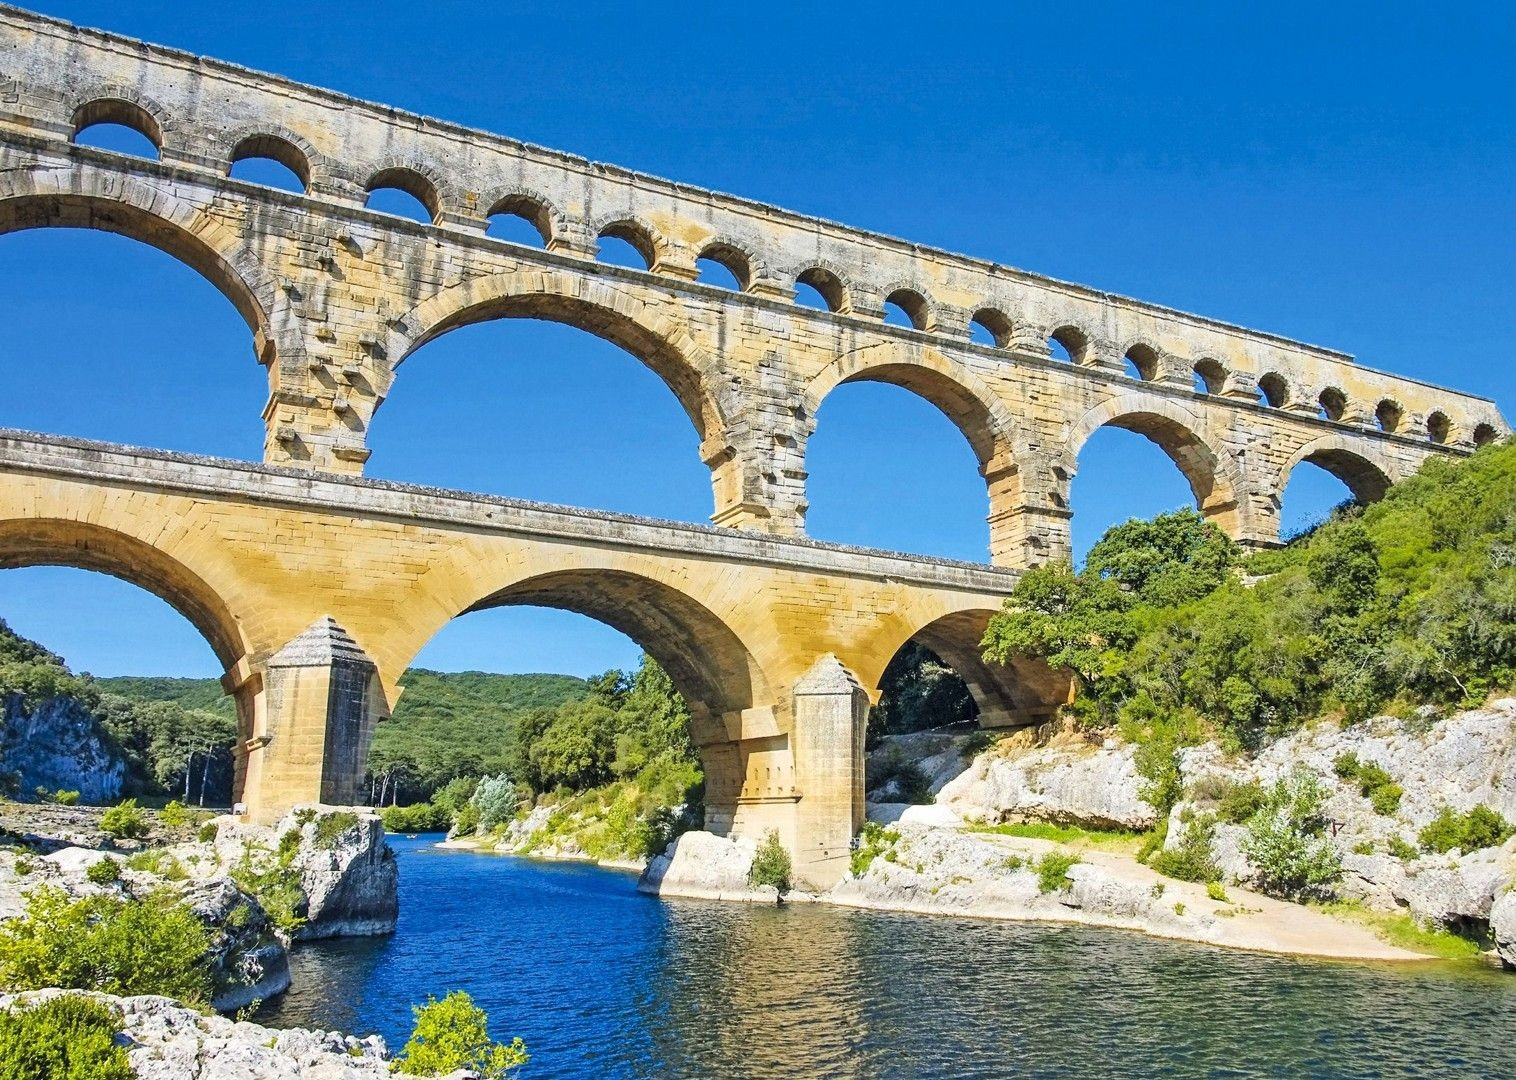 pont-du-gard-gardon-river-cycling-boat-cruise-holiday.jpg - France - Provence - Self-Guided Leisure Cycling Holiday - Leisure Cycling